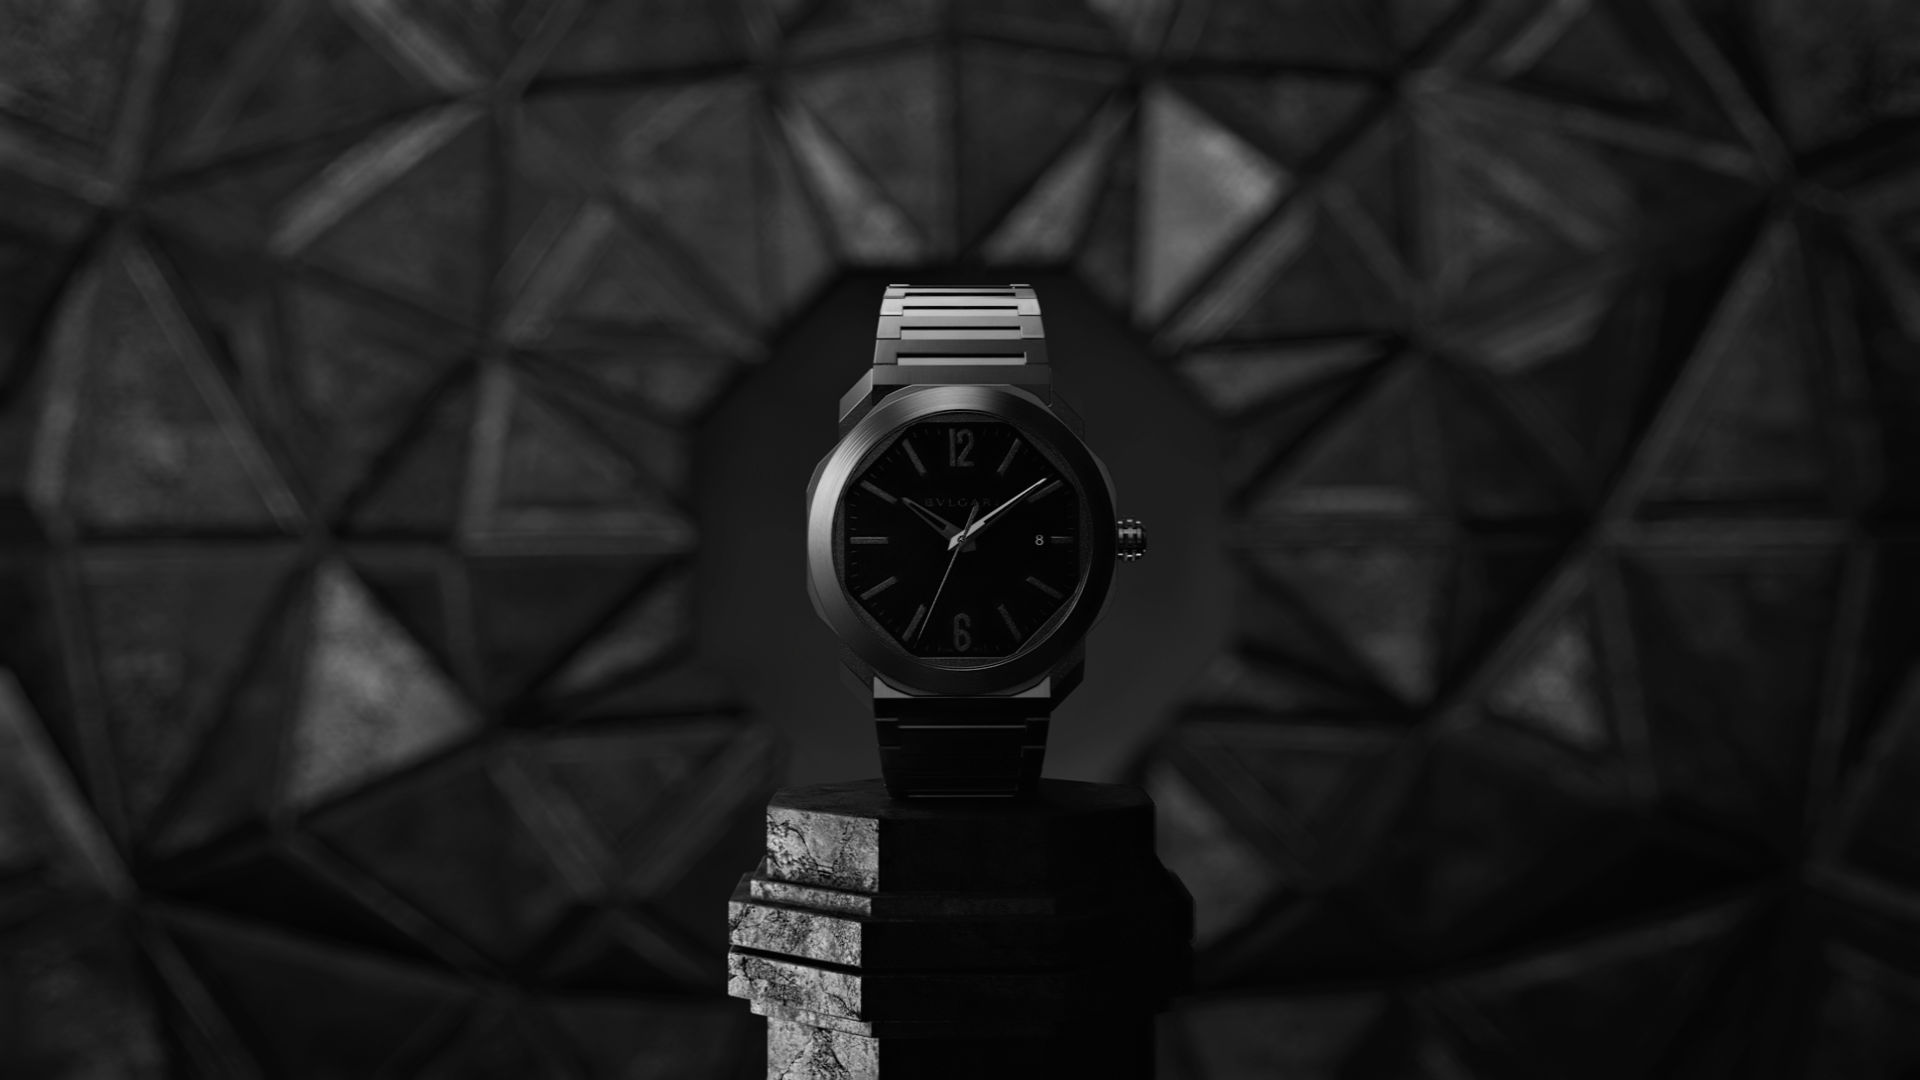 Bulgari Octo watch in a 3D environment with geometric patterns and dark concrete materials